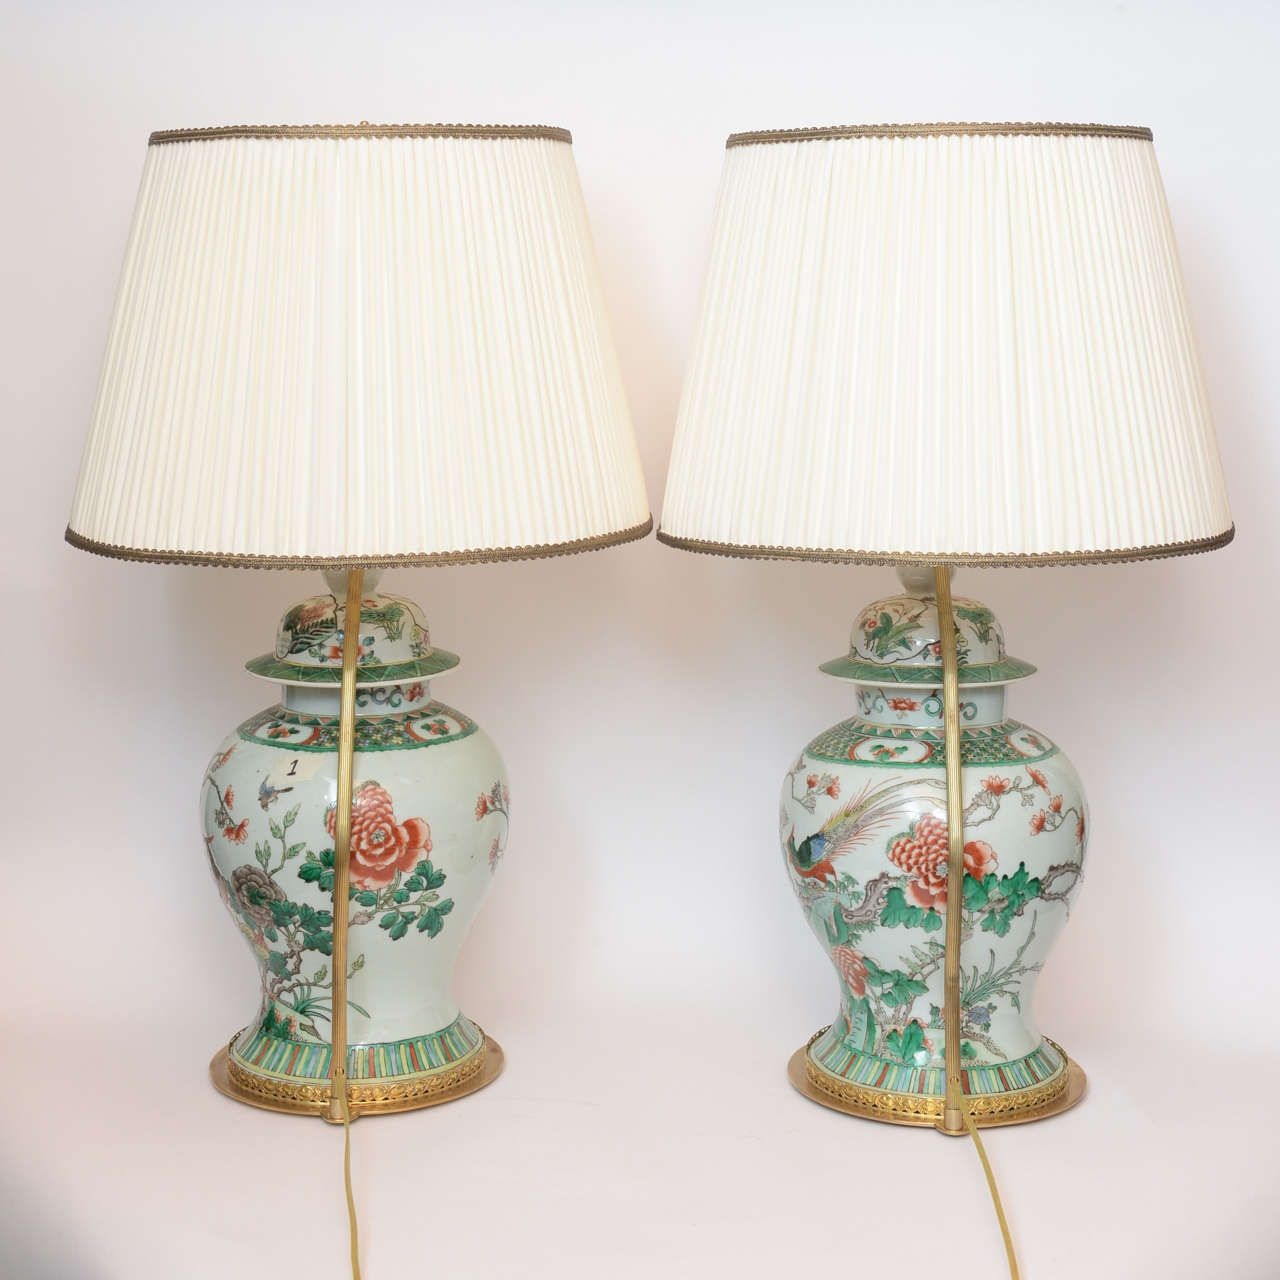 Pair Of 19th Century Chinese Ginger Jar Lamps With Painted Birds